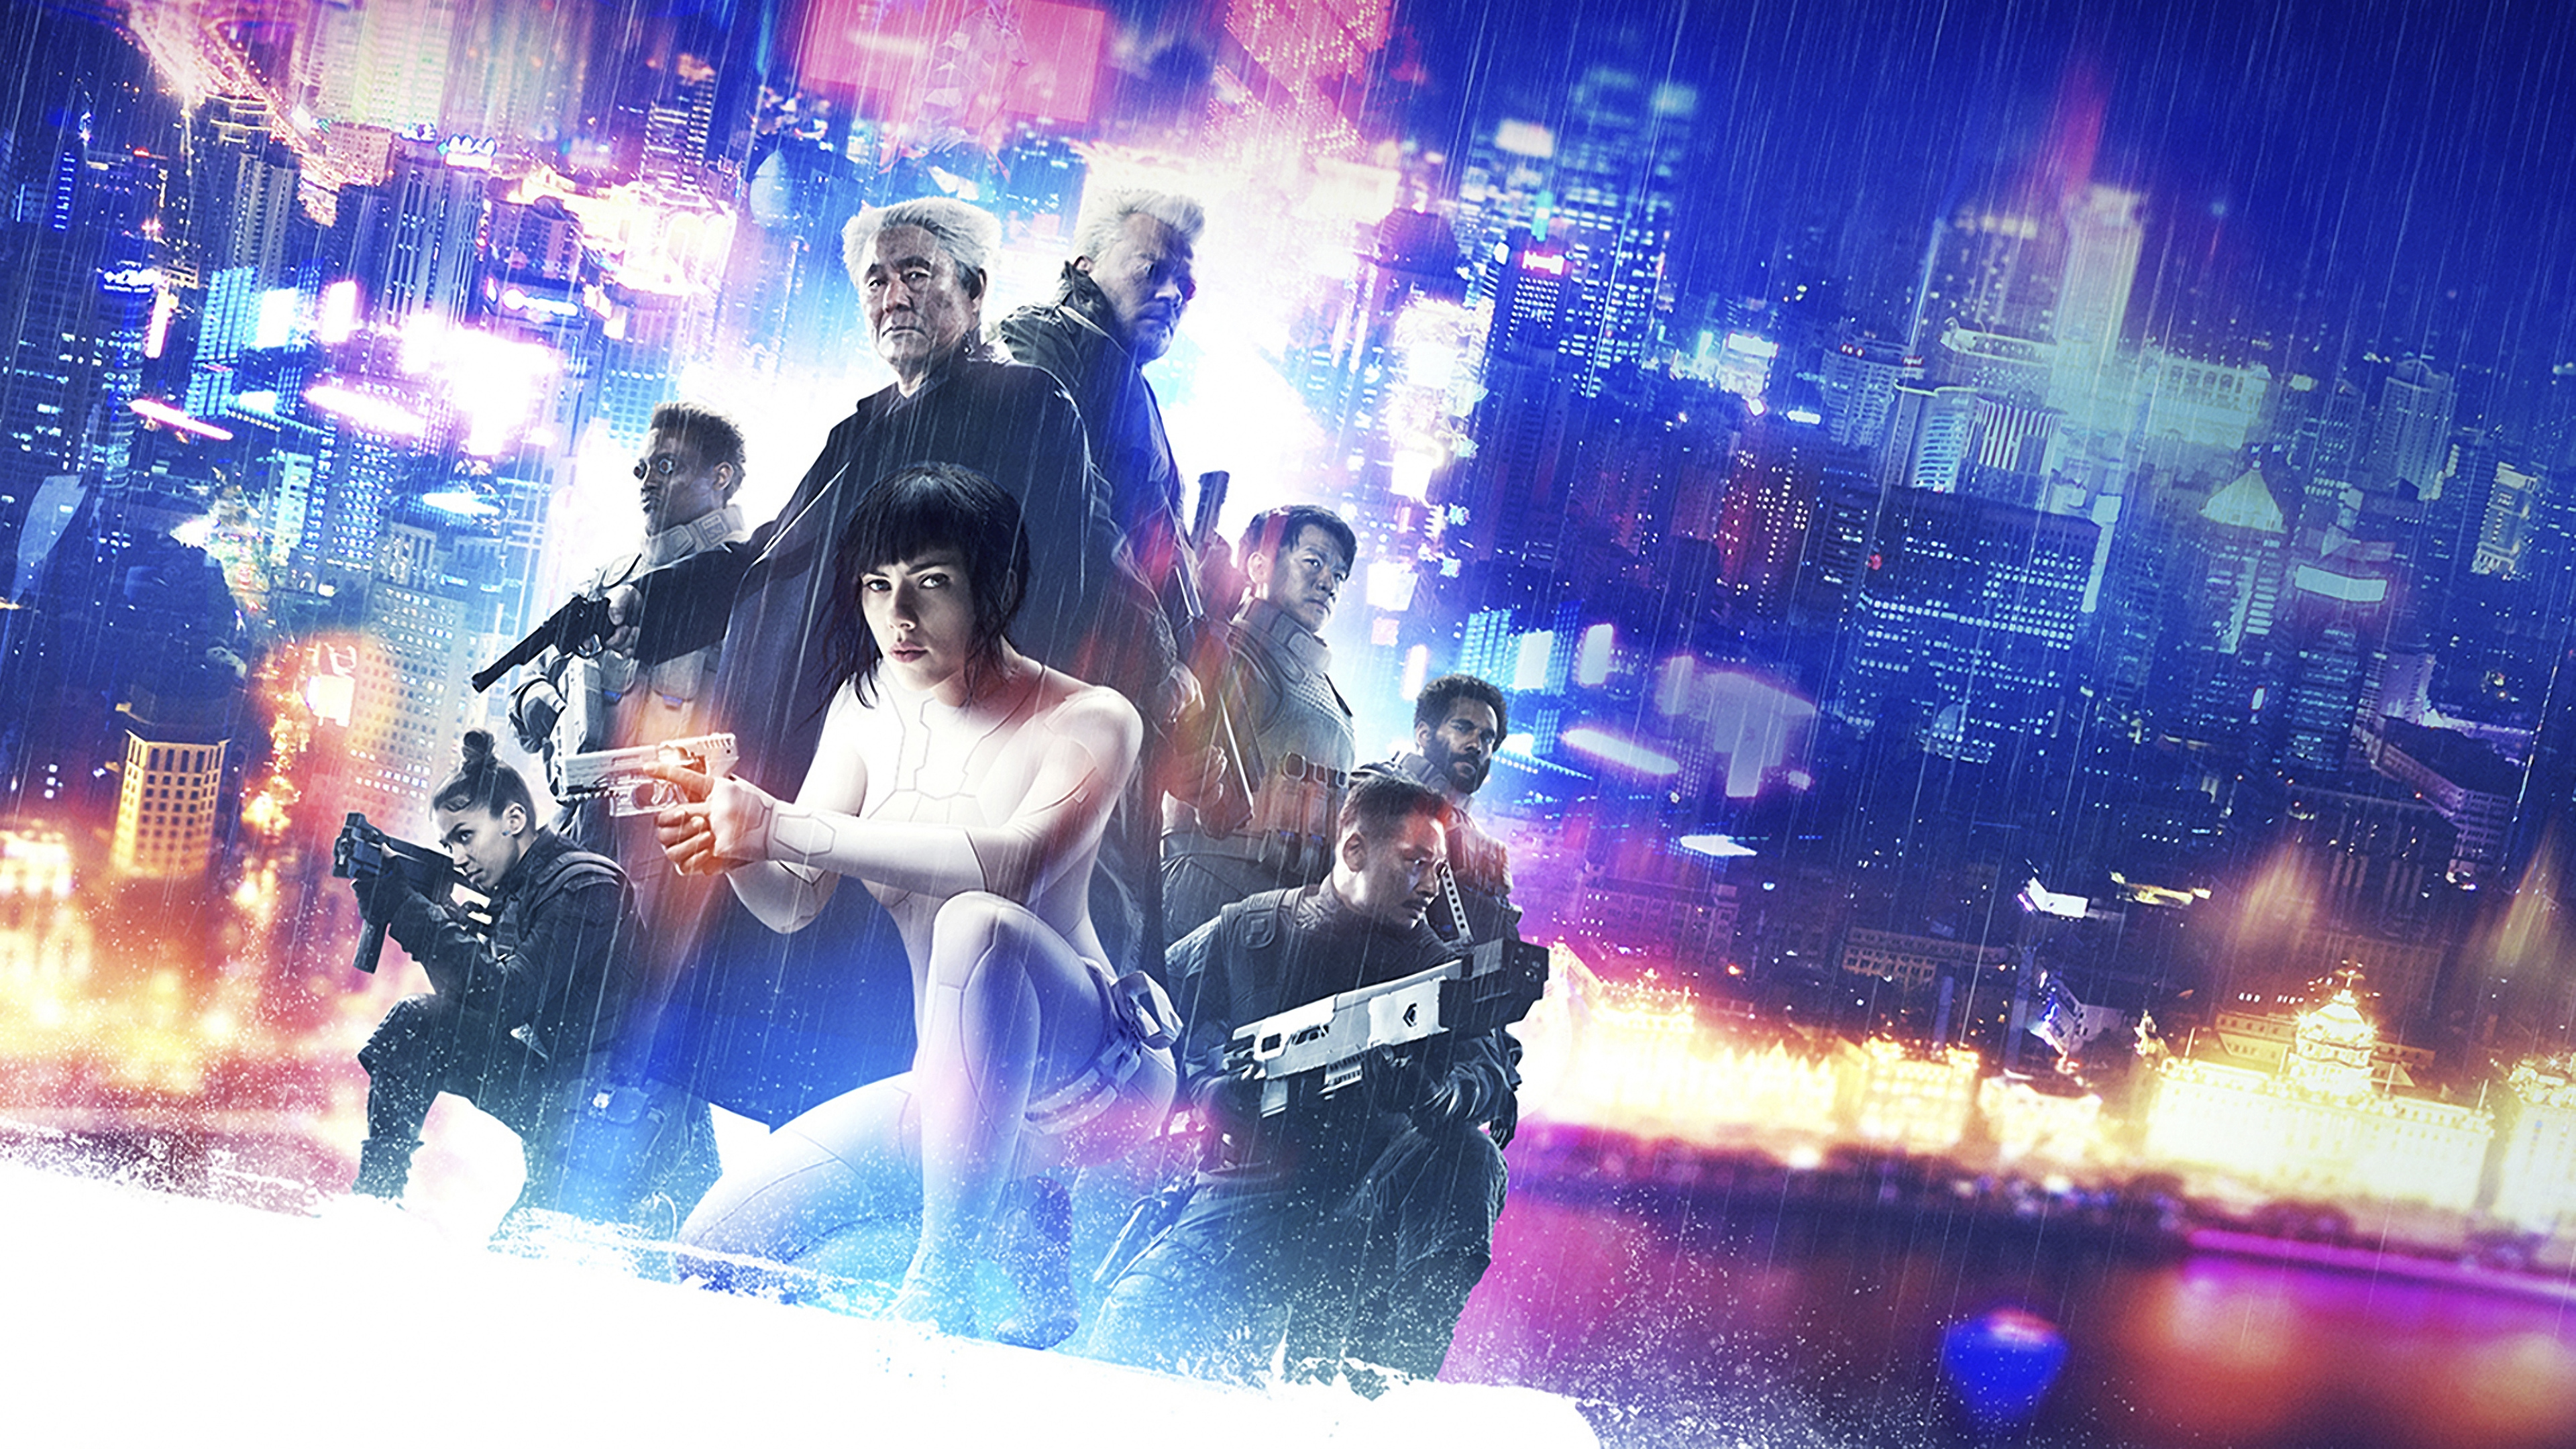 Wallpaper 4k Ghost In The Shell 4k Poster 4k Wallpapers Ghost In